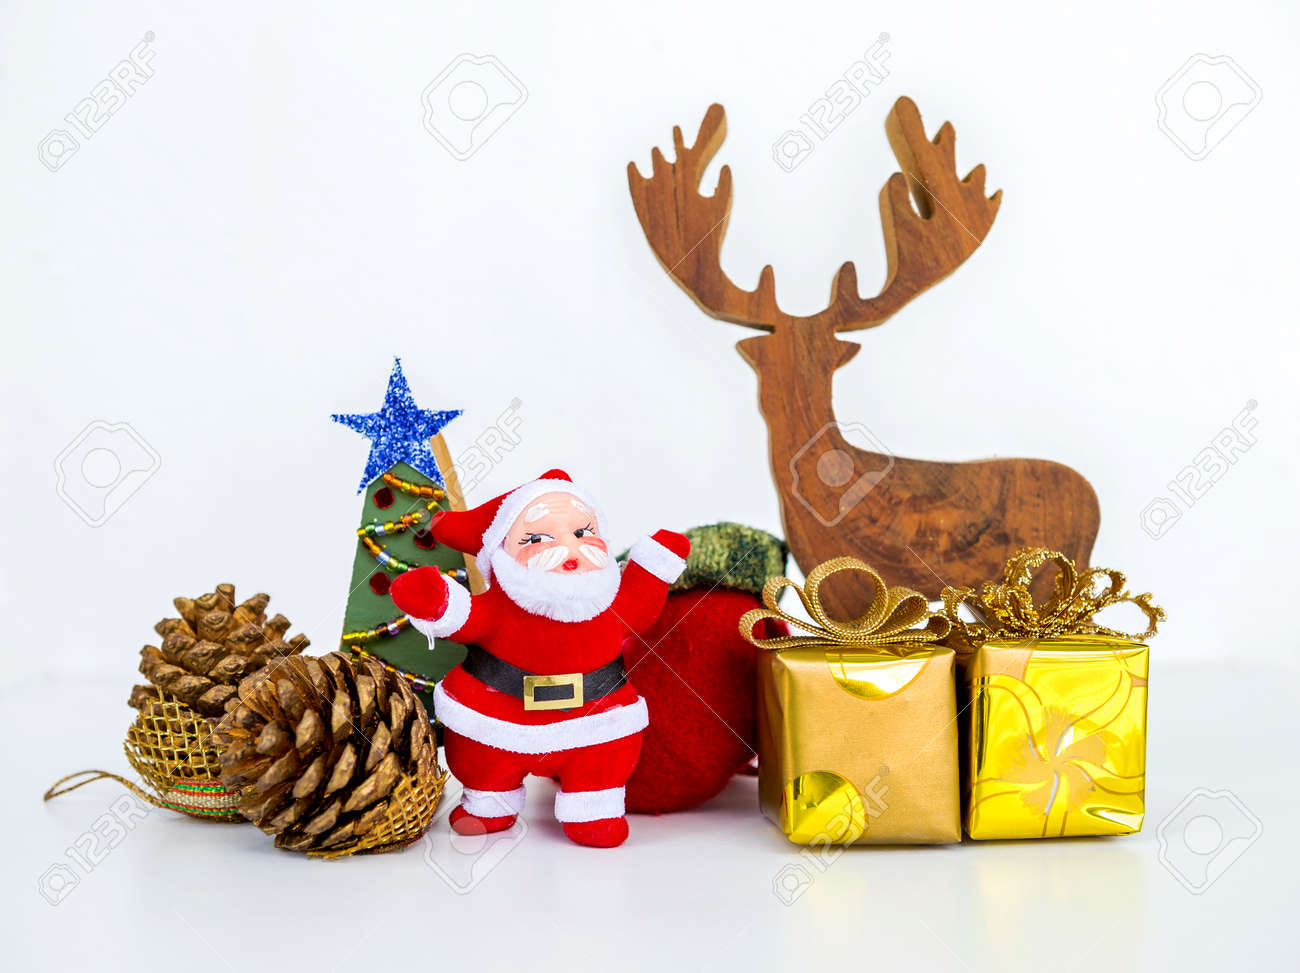 Christmas Tree Decoration Items On White Background Santa Claus